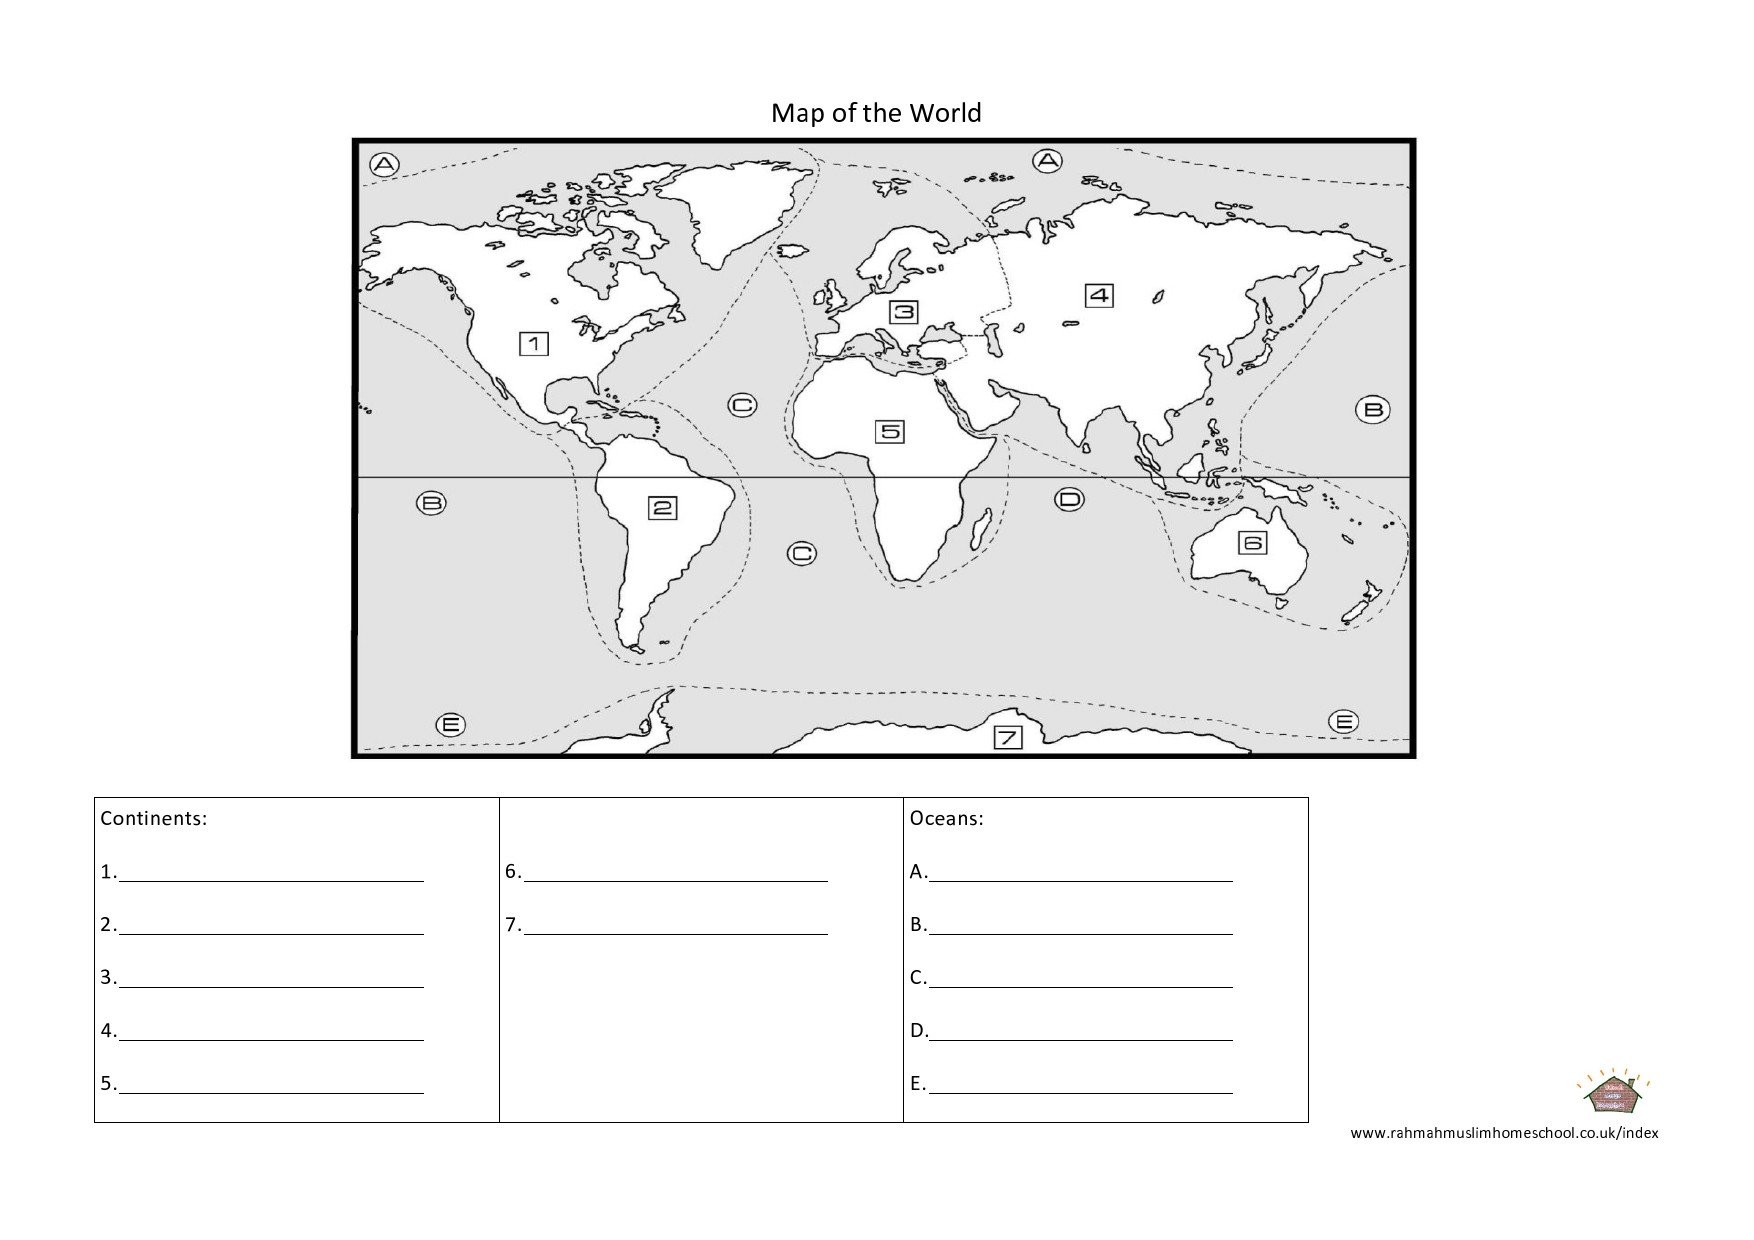 Oceans and Continents Worksheets Printable Geography Continents and Oceans Worksheet